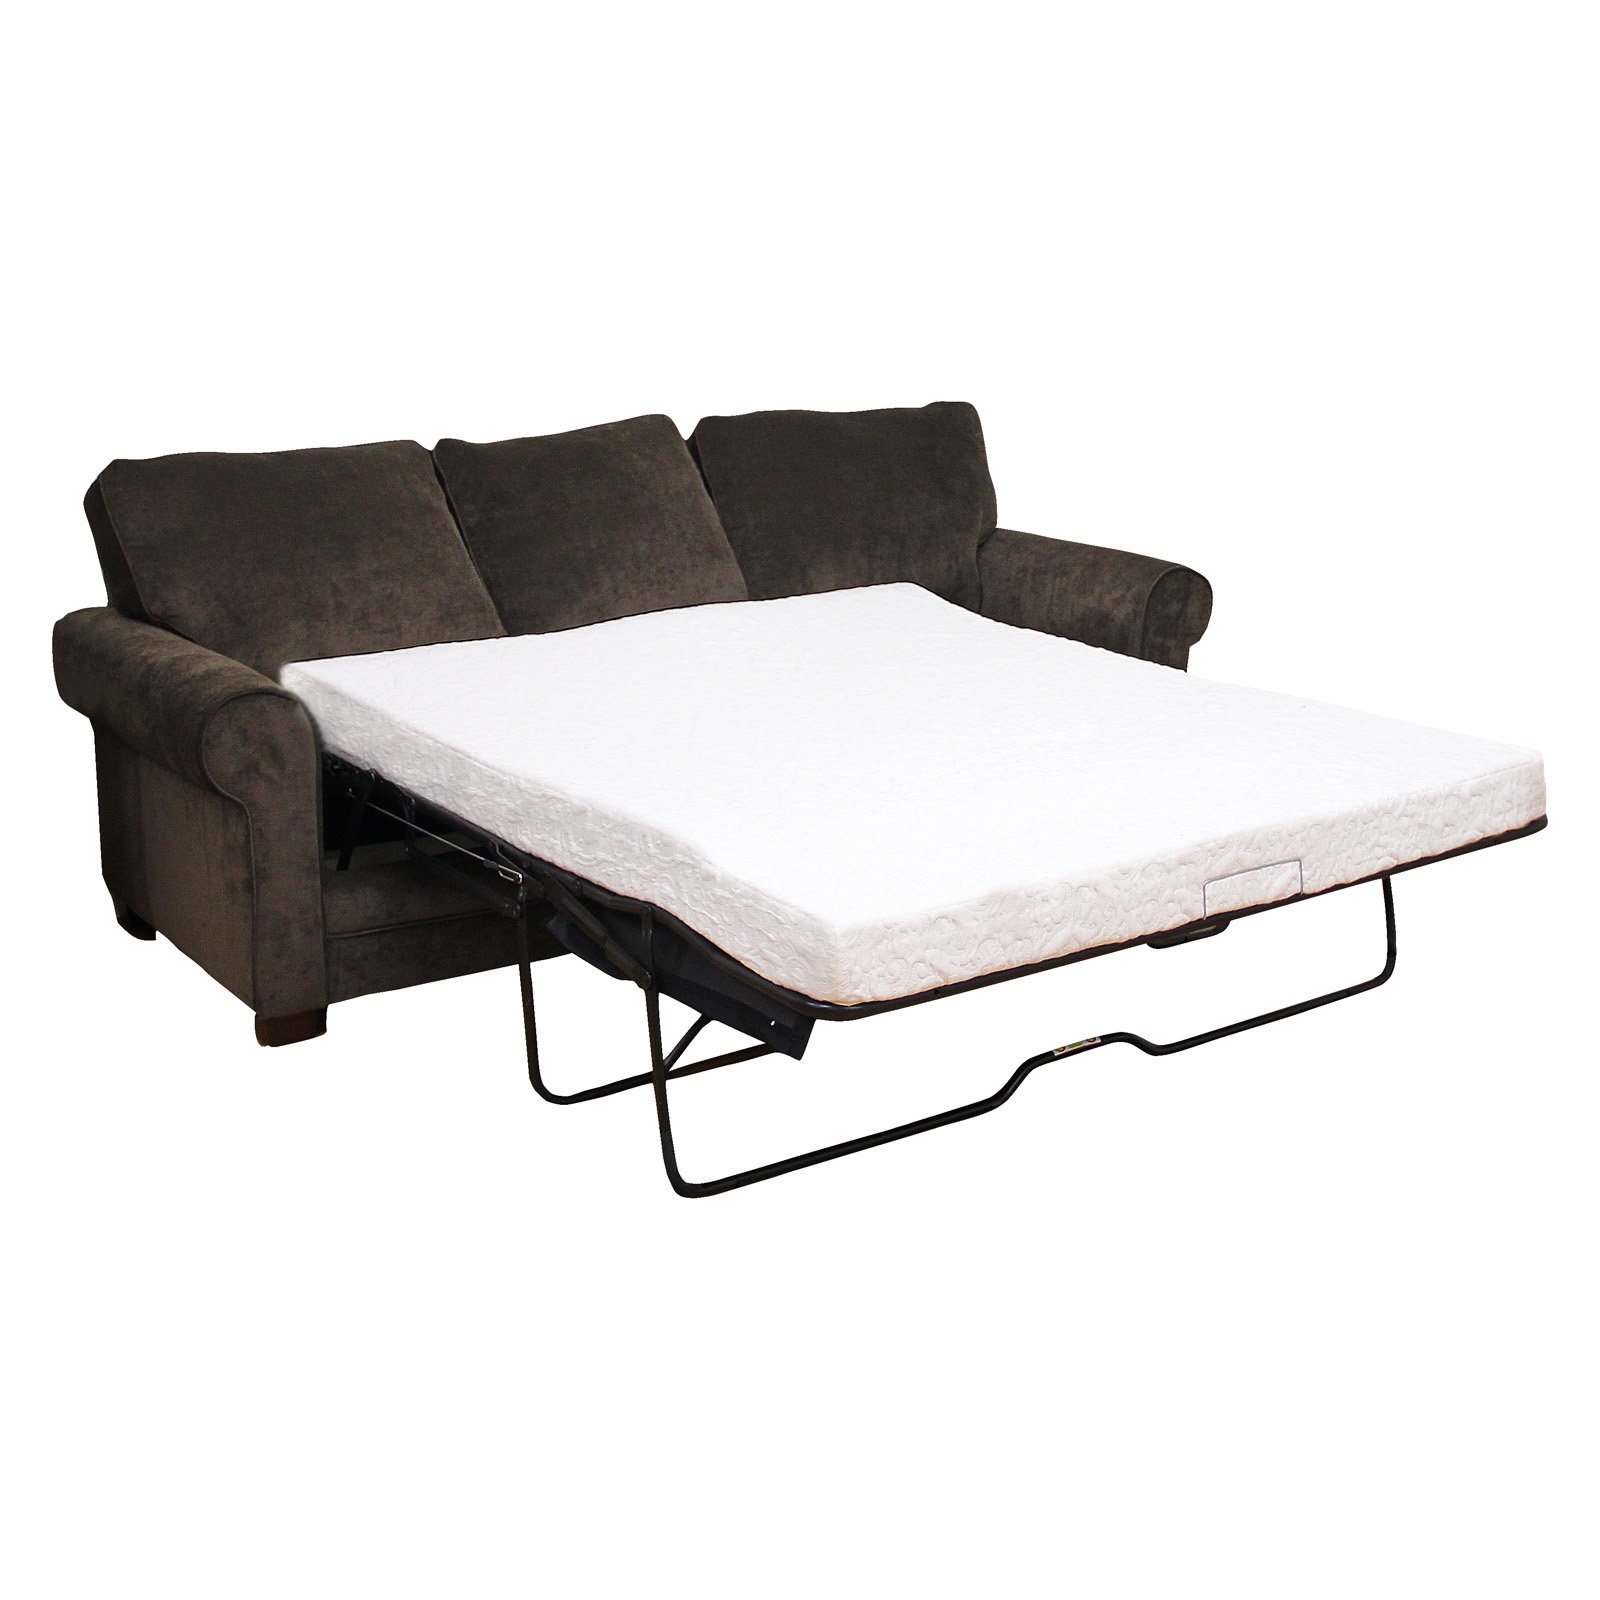 Classic Brands Cool Gel 4.5 in. Gel Memory Foam Sofa Bed Mattress